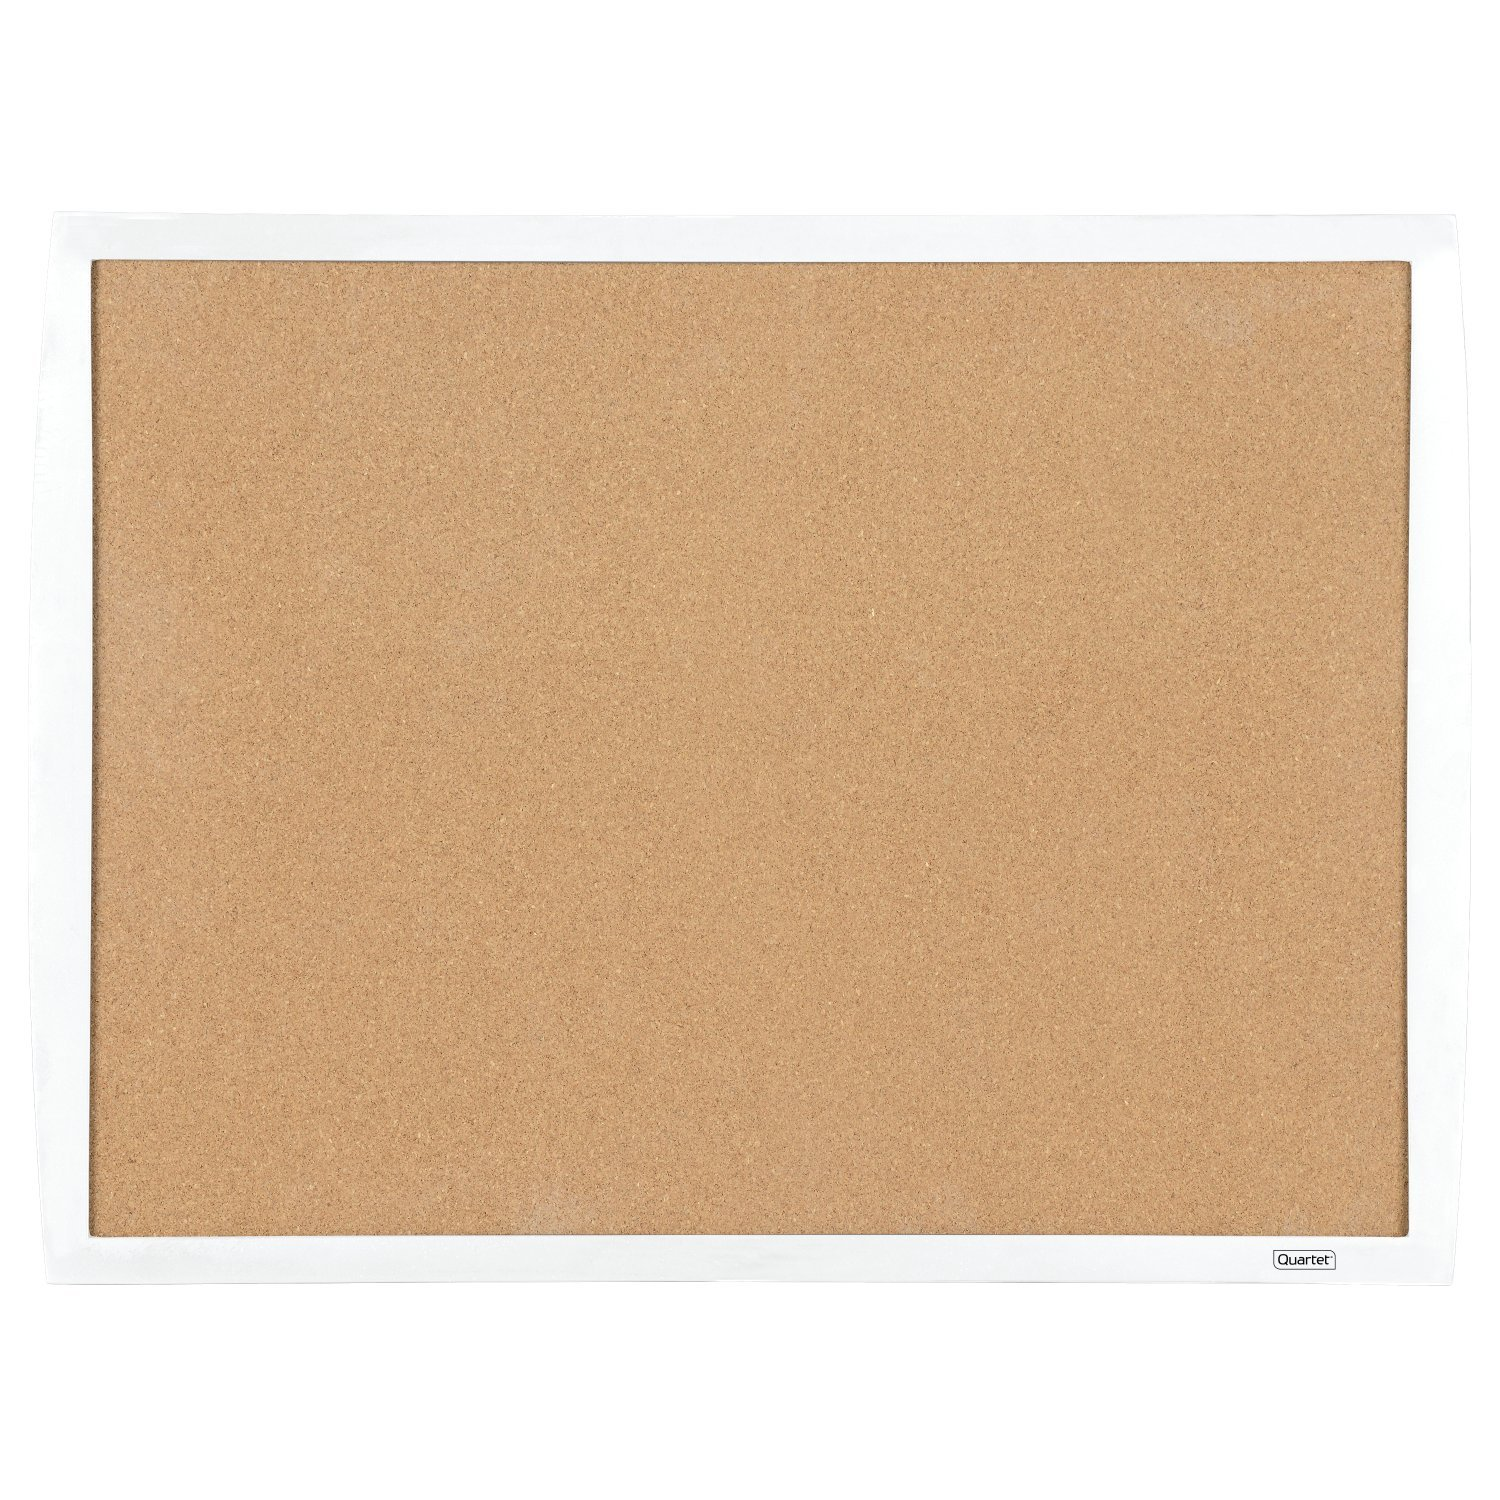 Uncategorized Cork Board No Frame bulletin boards amazon com office school supplies quartet cork board 17x23 white frame